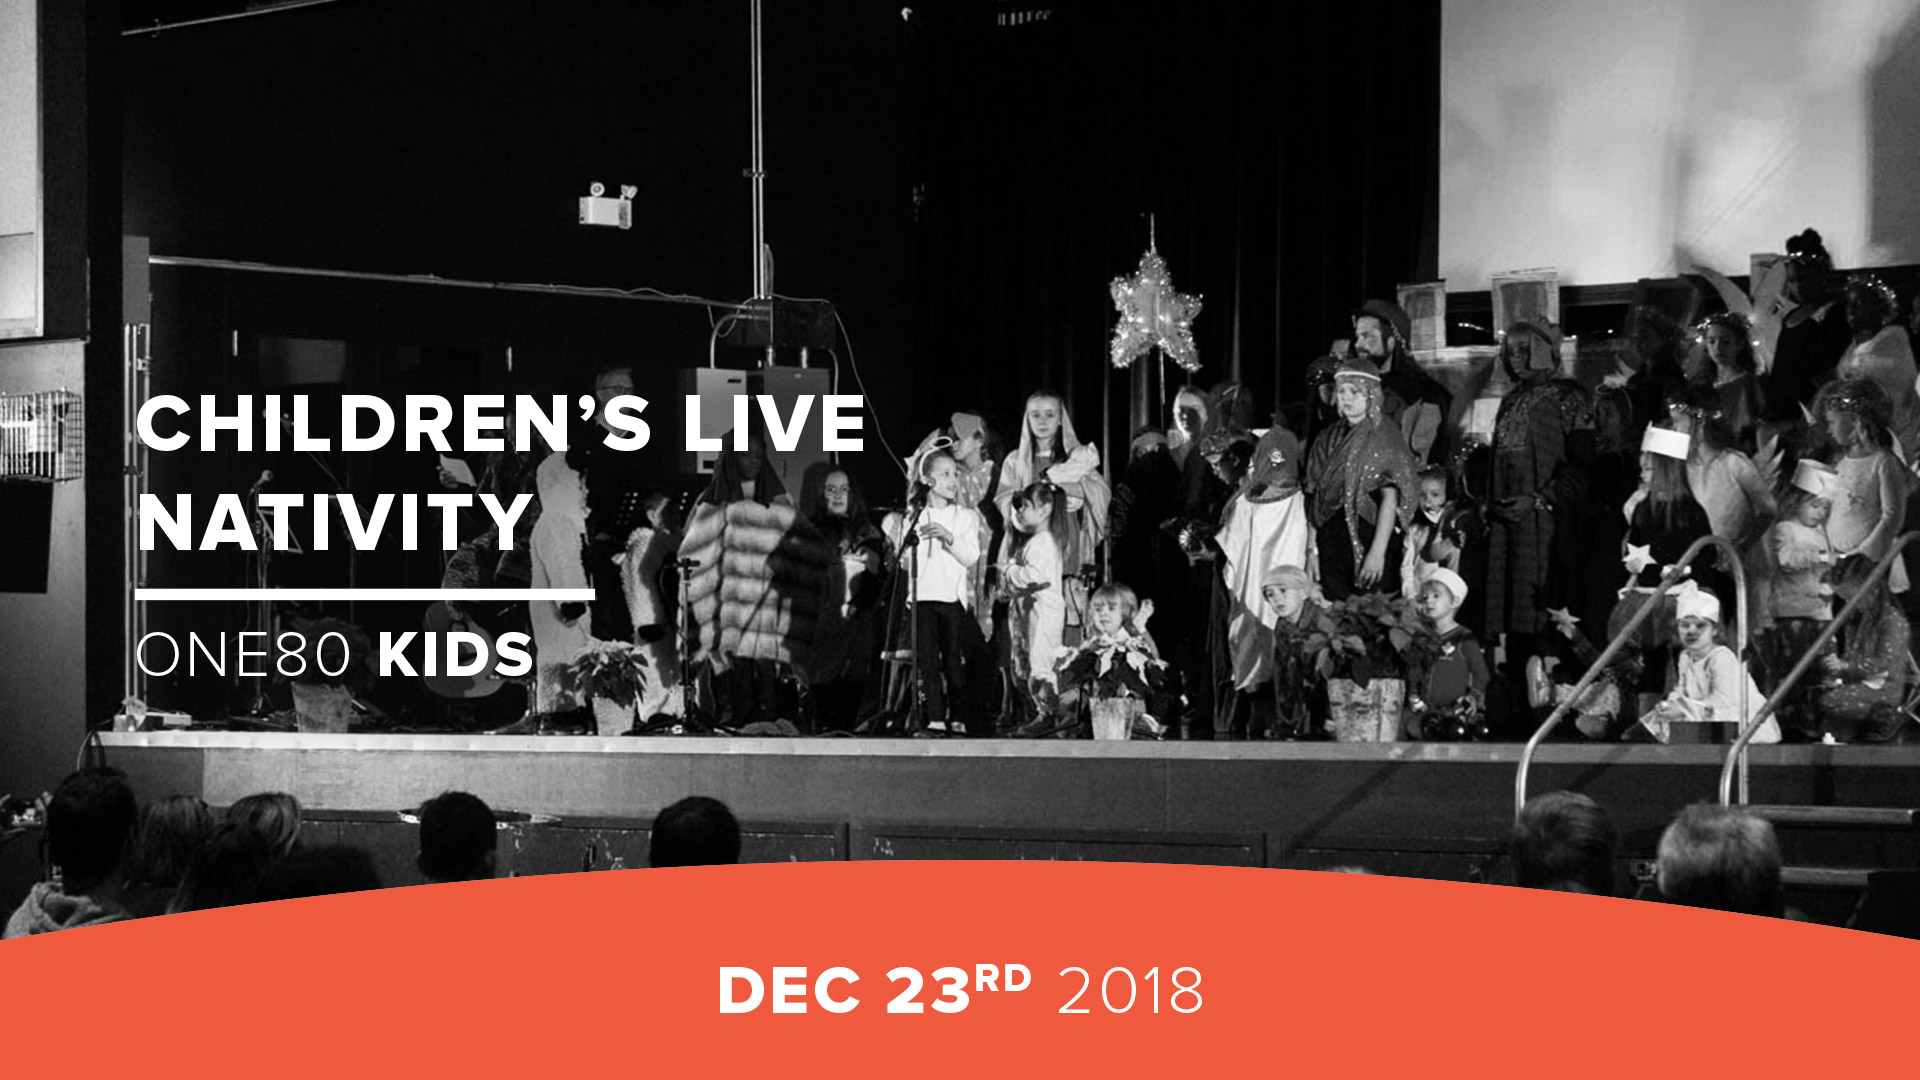 Children's Live Nativity